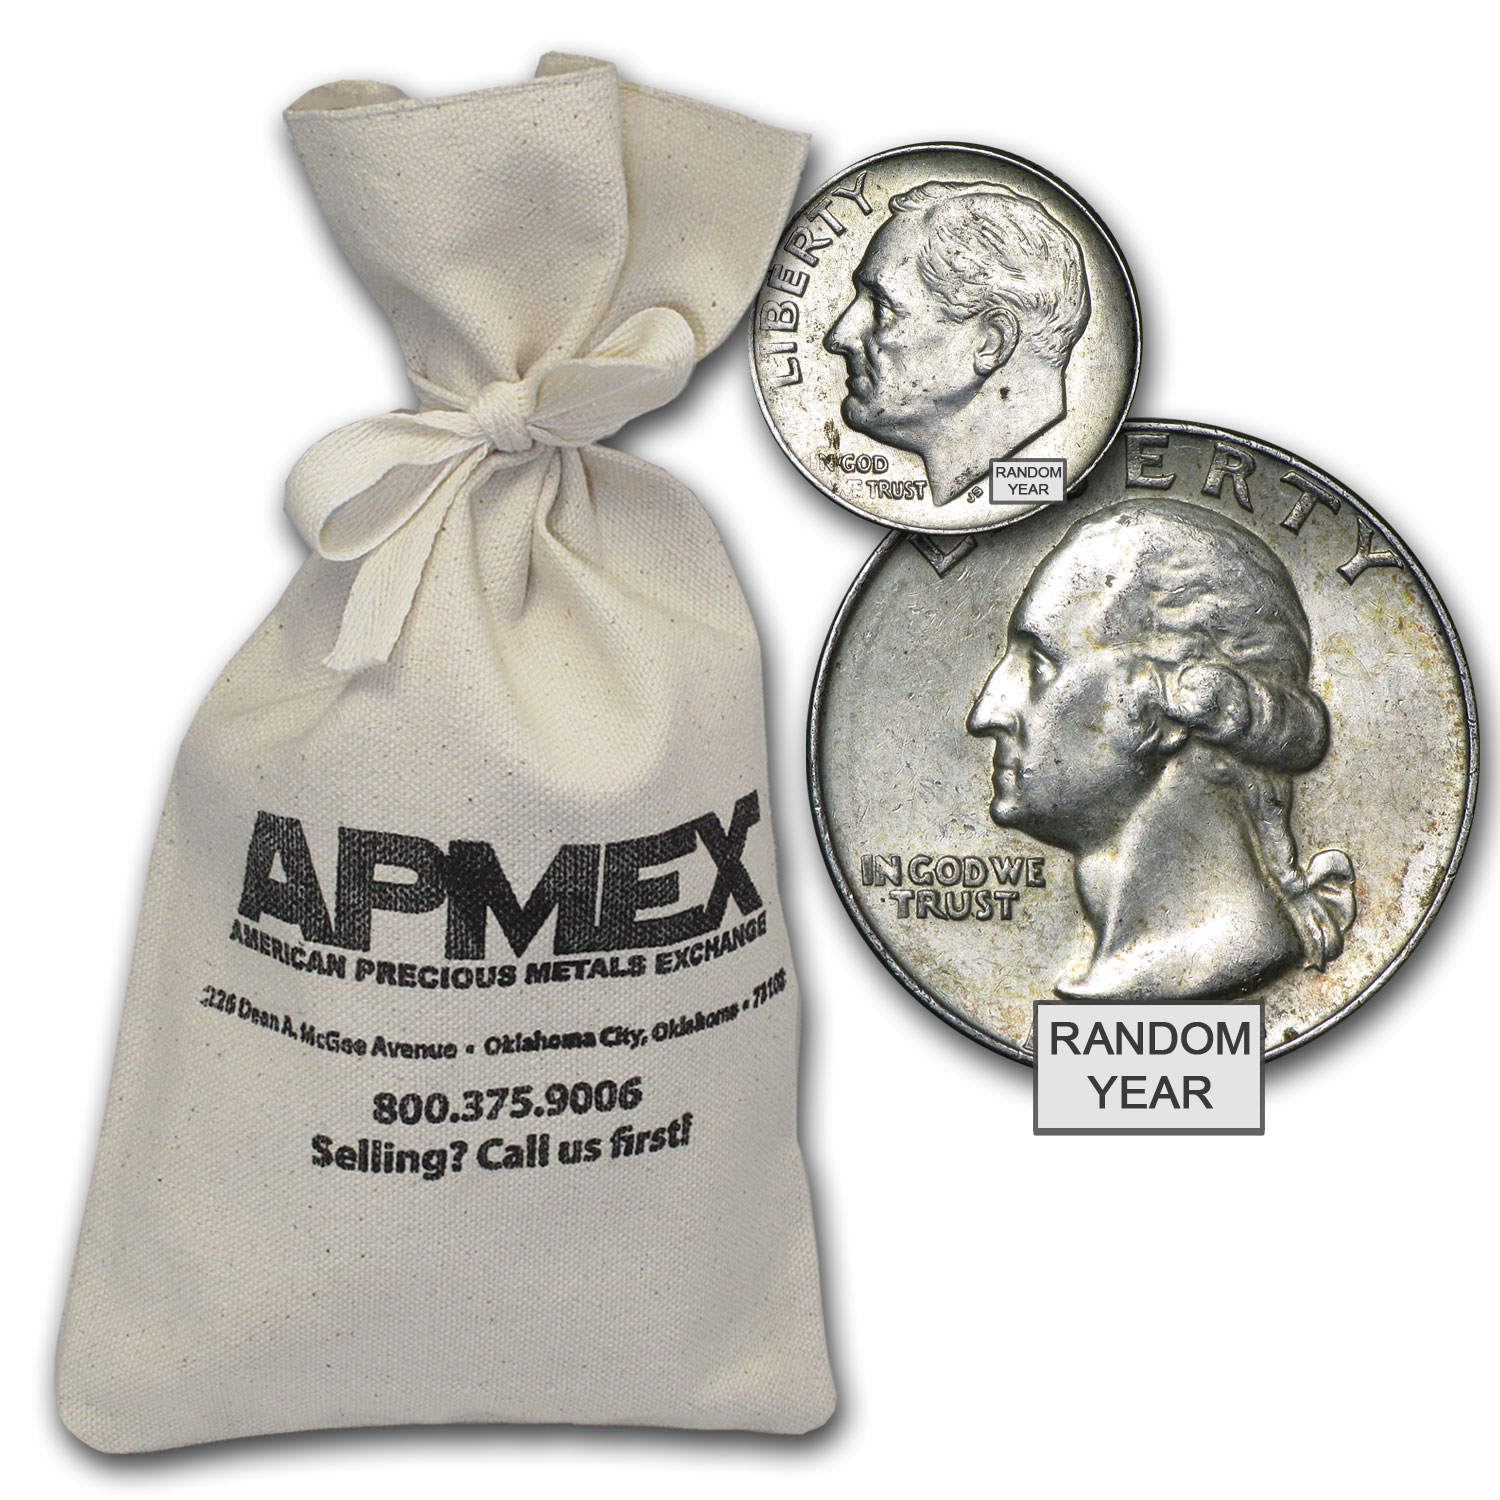 90% Silver Coins - $500 Face-Value Bag